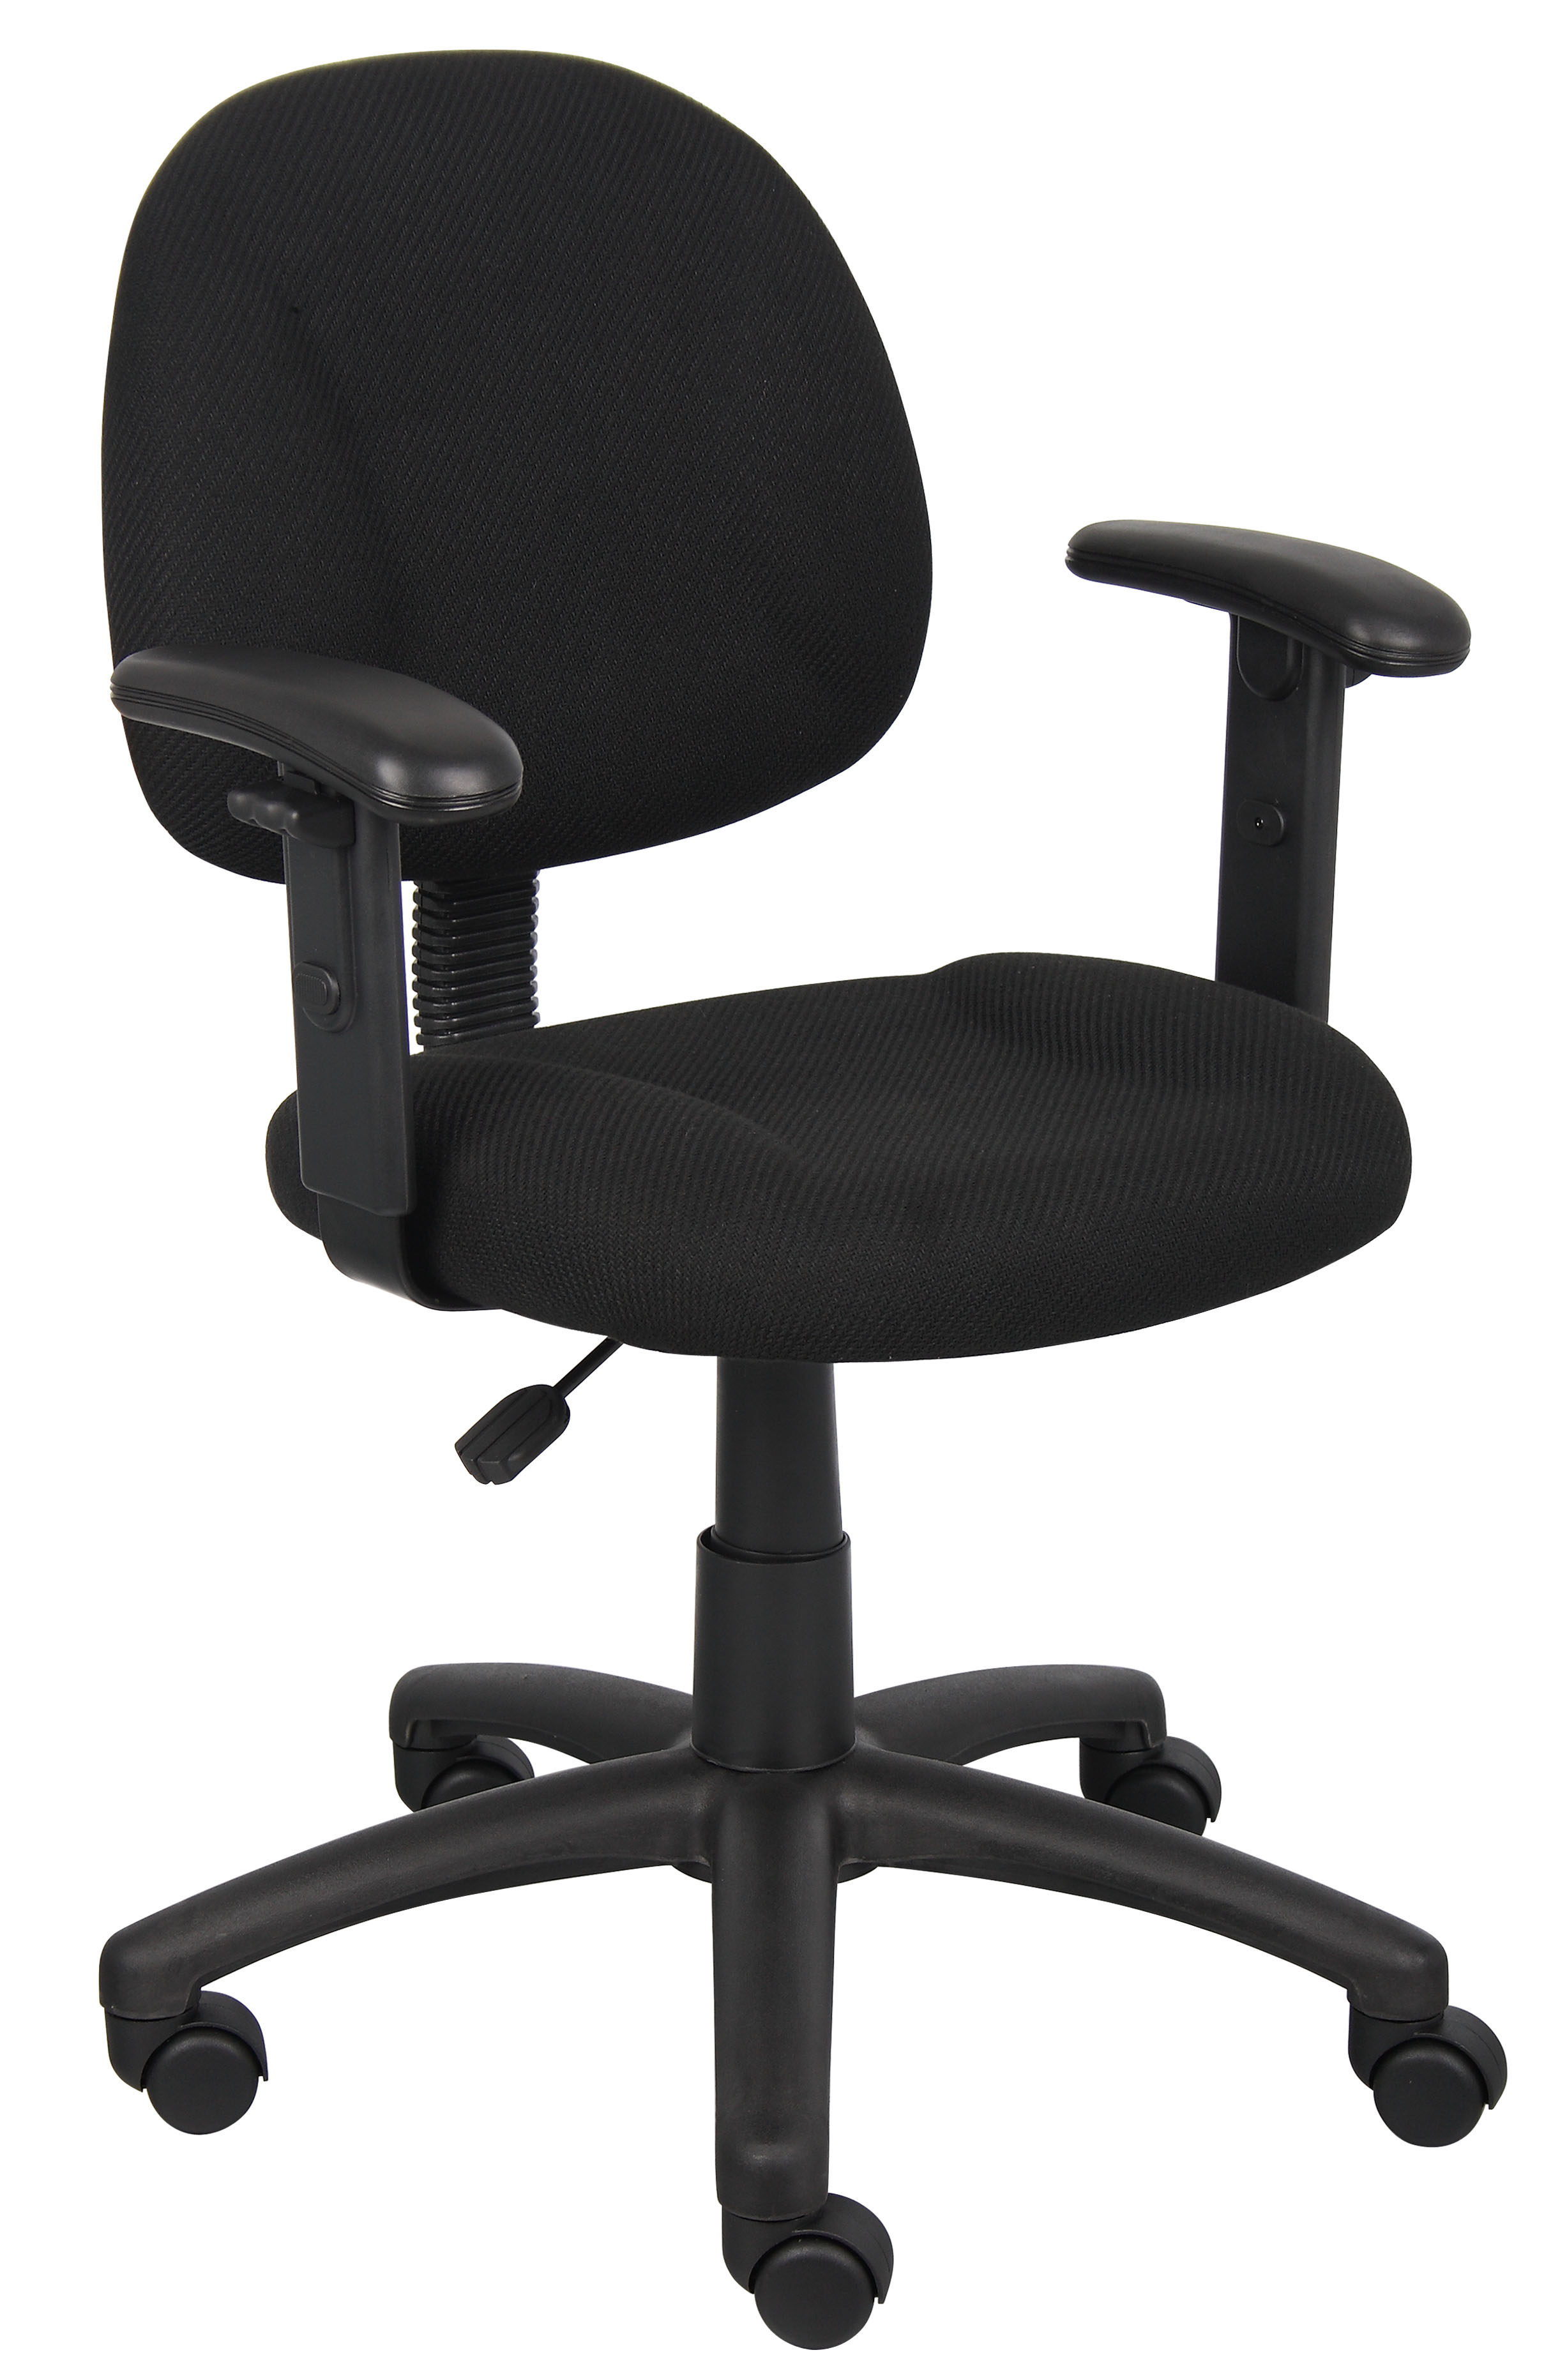 posture deluxe chair dicks sporting goods chairs boss office home black perfect task with adjustable arms walmart com